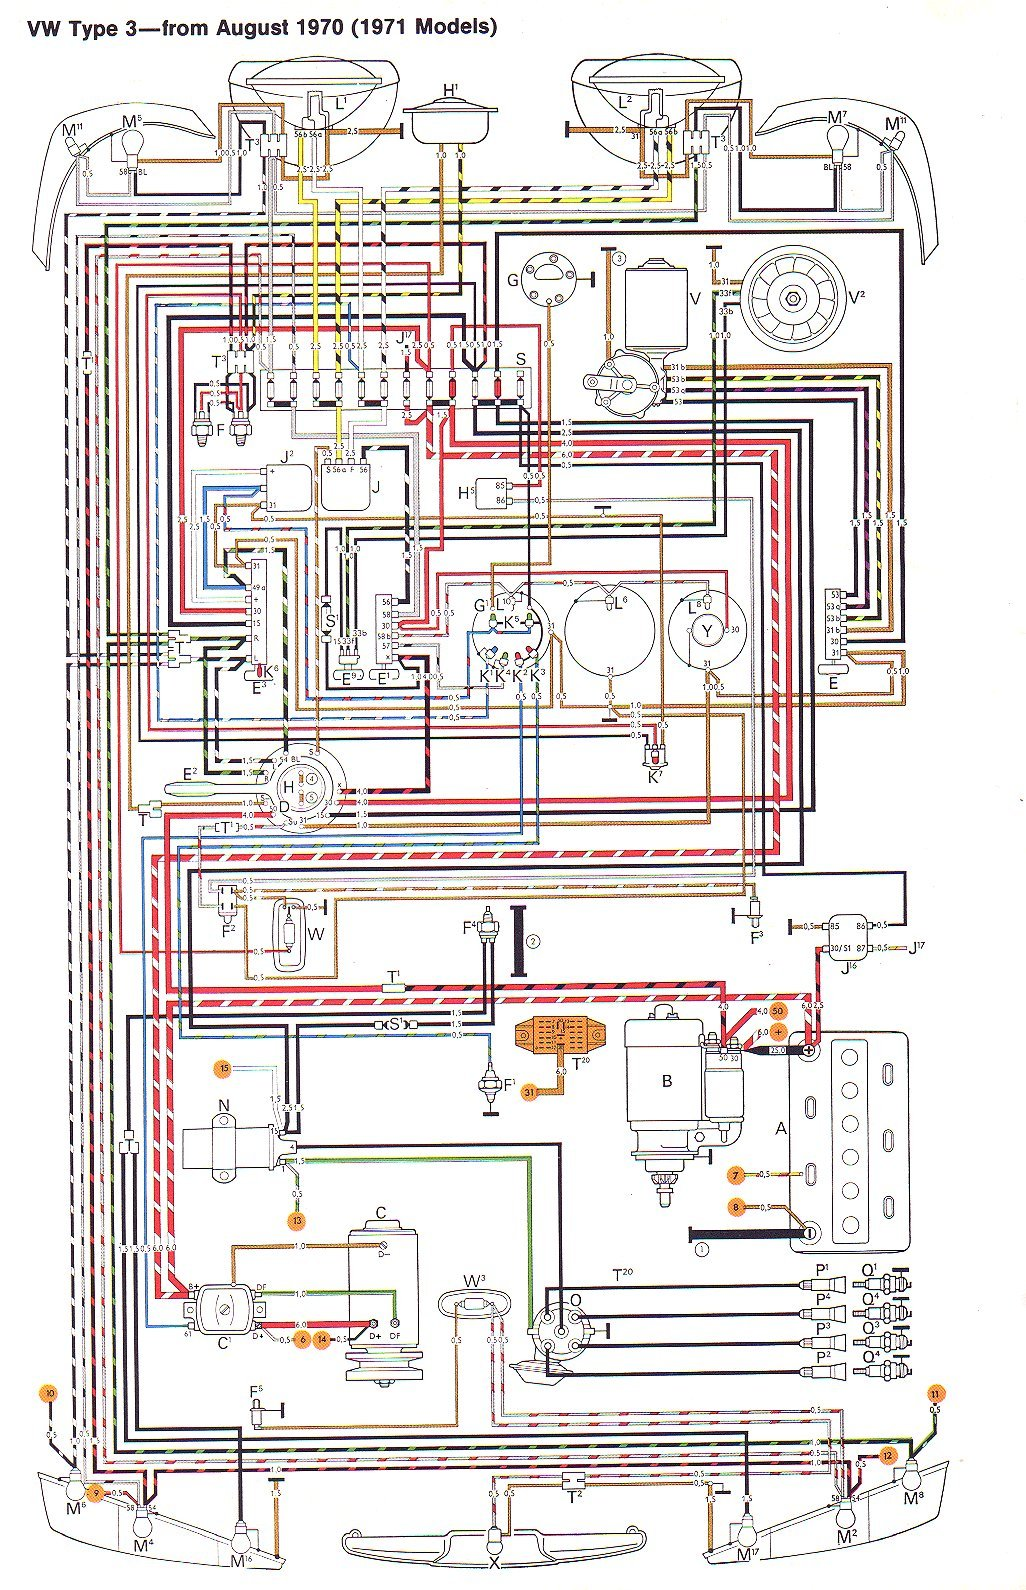 Air Cooled Vw Wire Diagram Archive Of Automotive Wiring Beetle Alternator Scematic 71 Type 3 Schematics Rh Thyl Co Uk